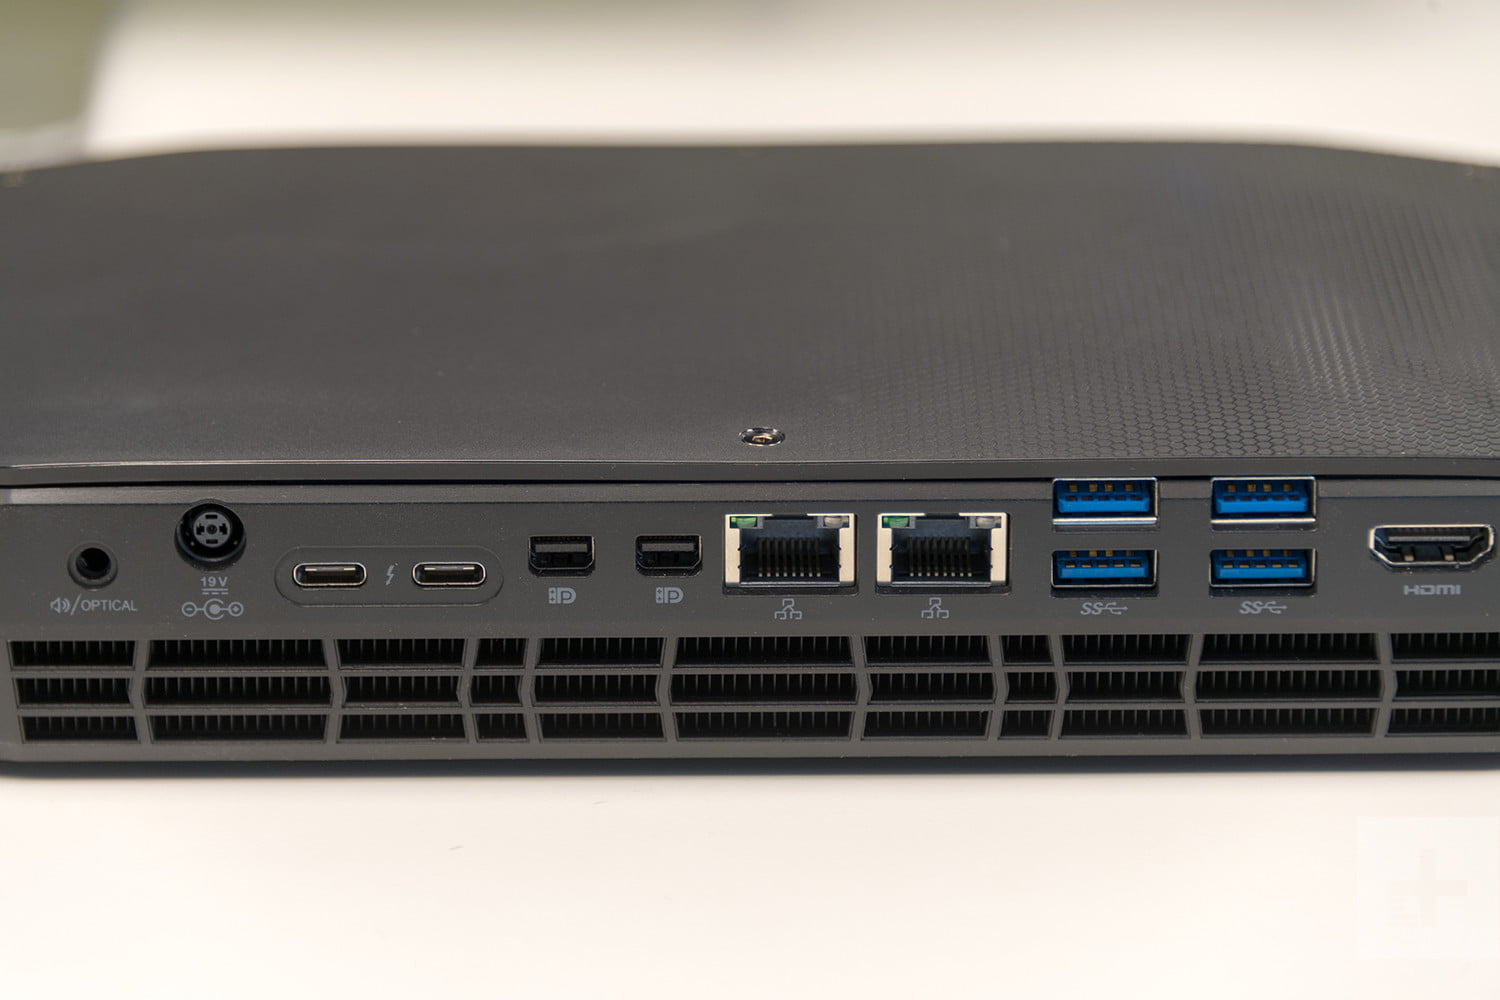 Intel Hades Canyon NUC8i7HVK Review | Digital Trends